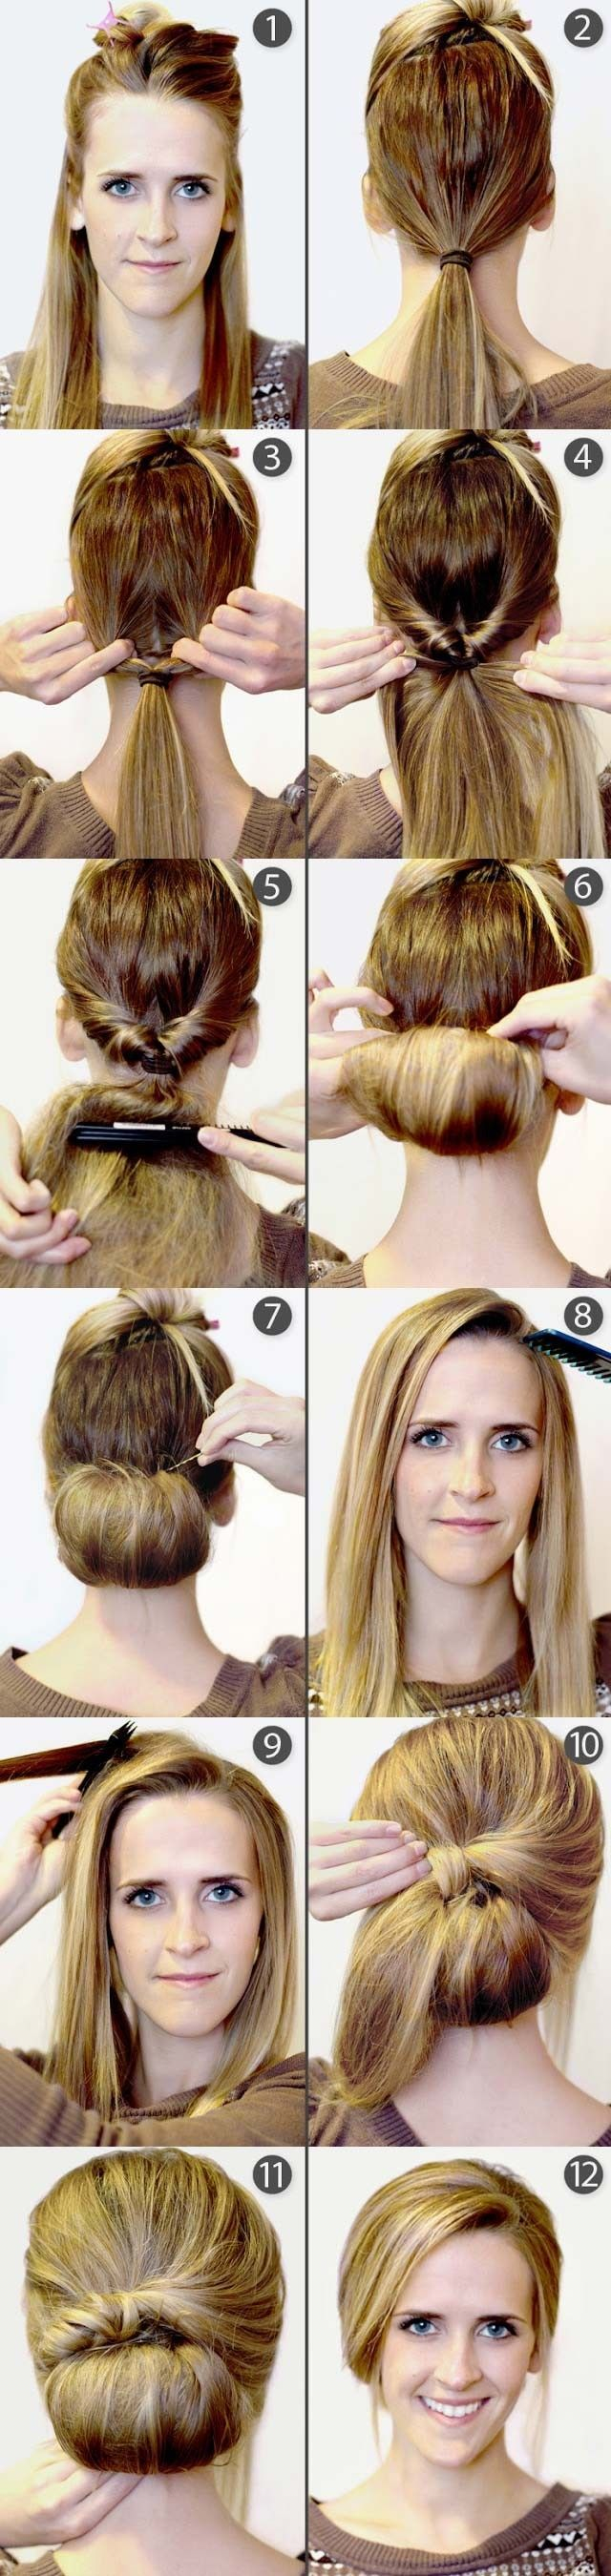 15 Cute hairstyles: Step-by-Step Hairstyles for Long Hair   PoPular Haircuts